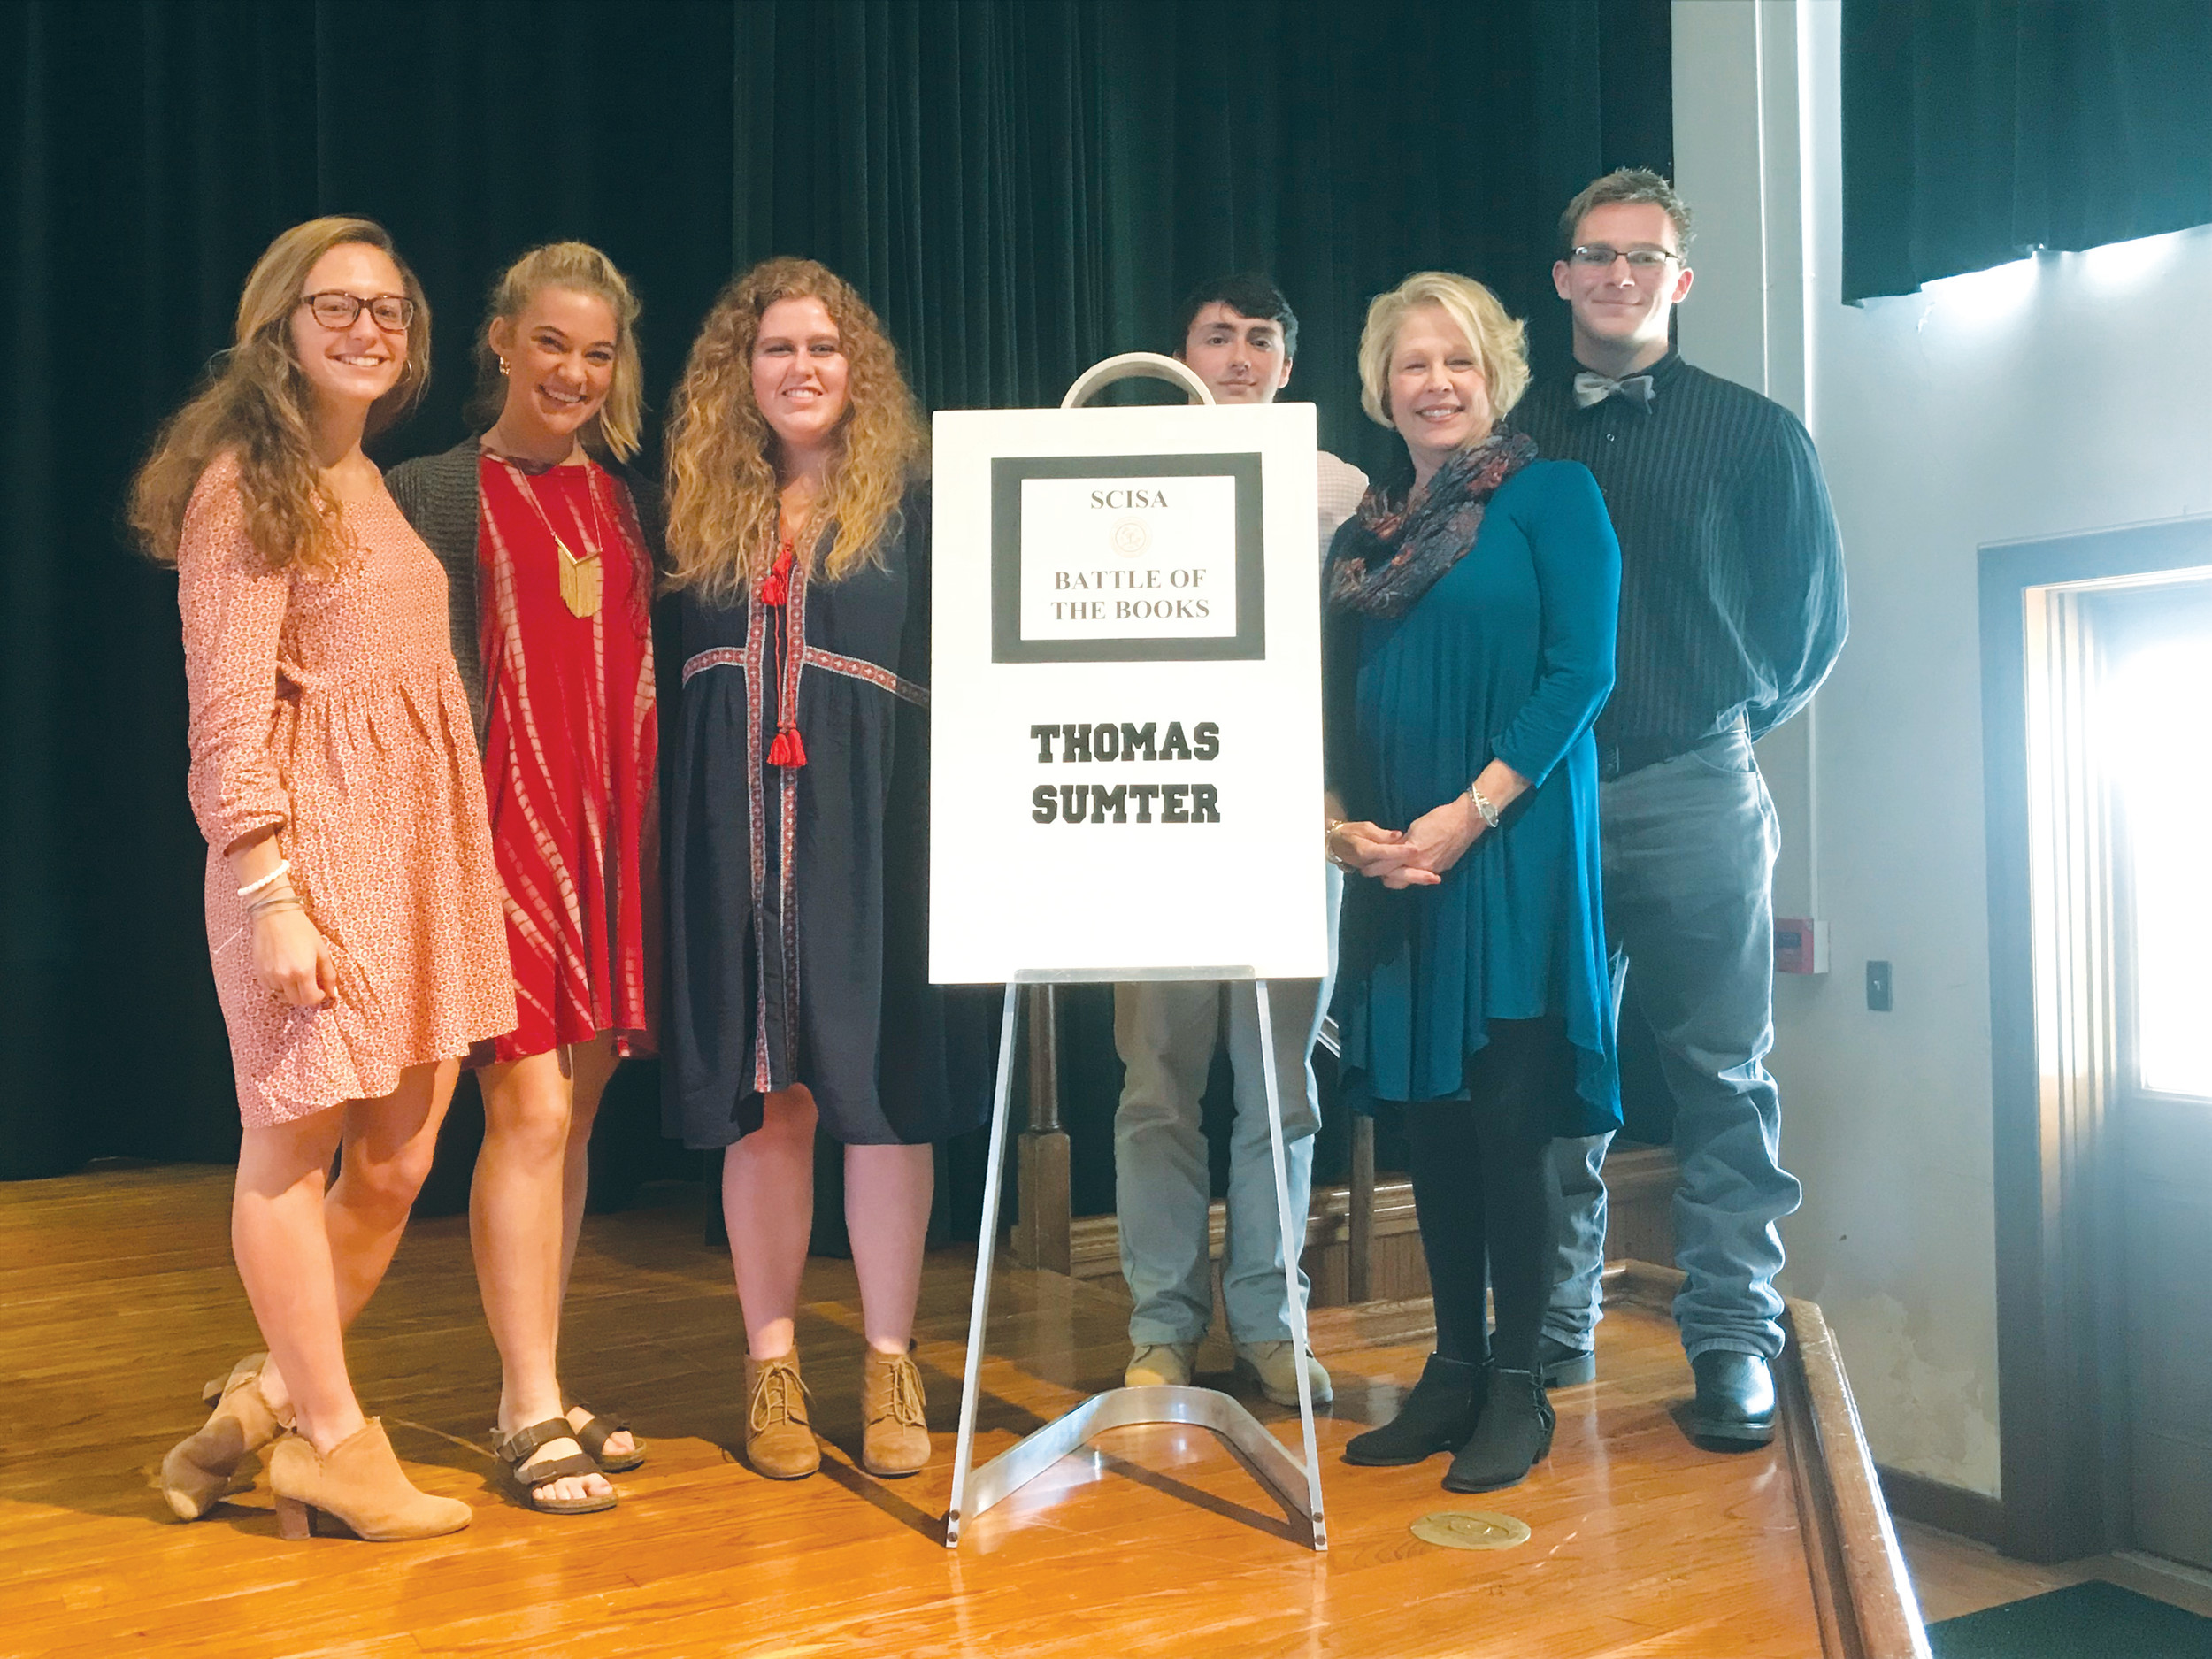 Thomas Sumter Academy hosted and participated in the first SCISA-sponsored Battle of the Books for High School students.